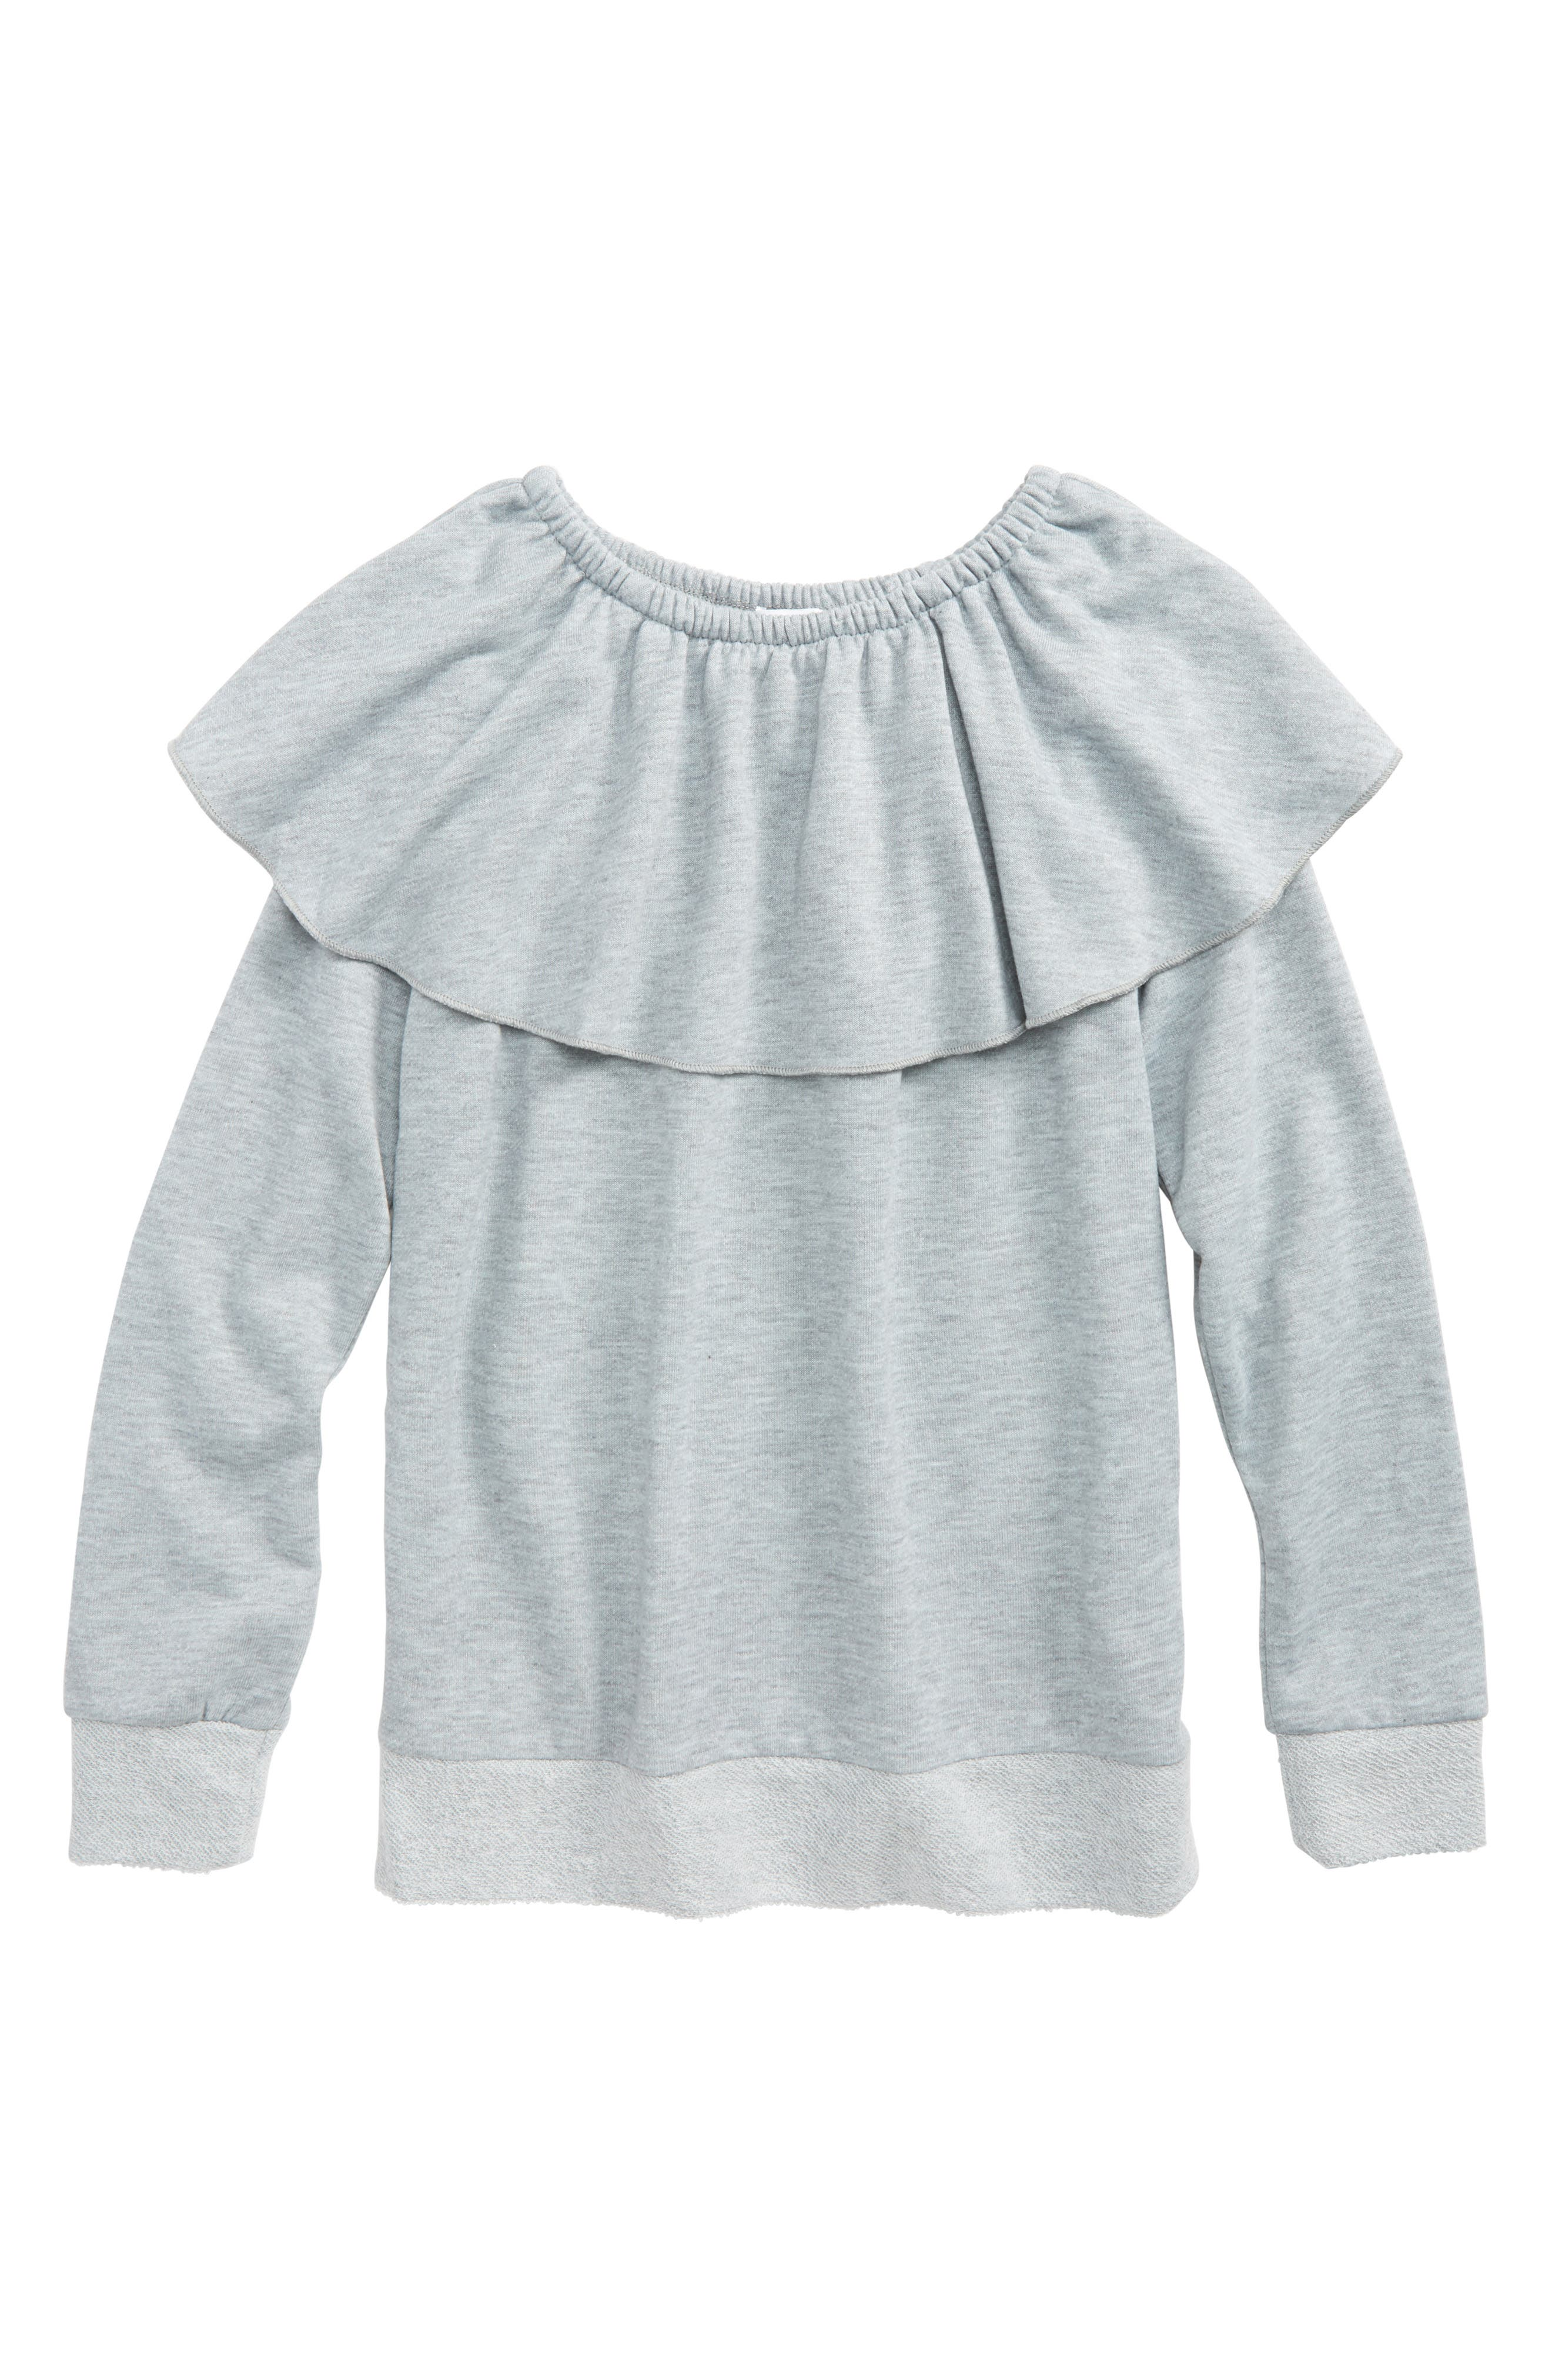 Ruffle French Terry Sweatshirt,                             Main thumbnail 1, color,                             Dark Grey Heather